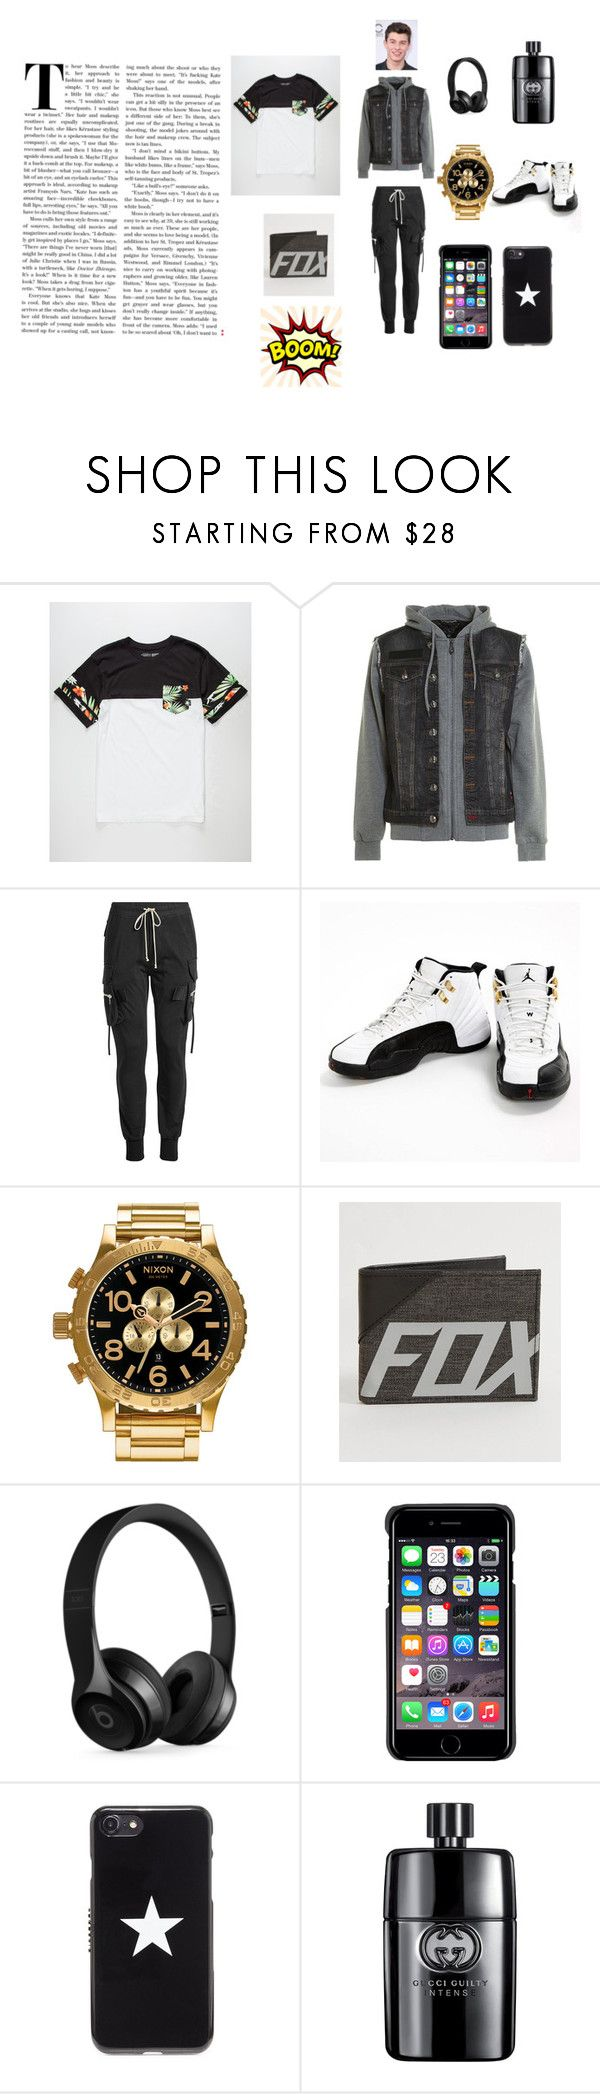 """the black and white outfit"" by sharifa-a on Polyvore featuring Vans, Philipp Plein, Rick Owens, Jordan Brand, Nixon, Fox, Beats by Dr. Dre, County Of Milan, Givenchy and Gucci"